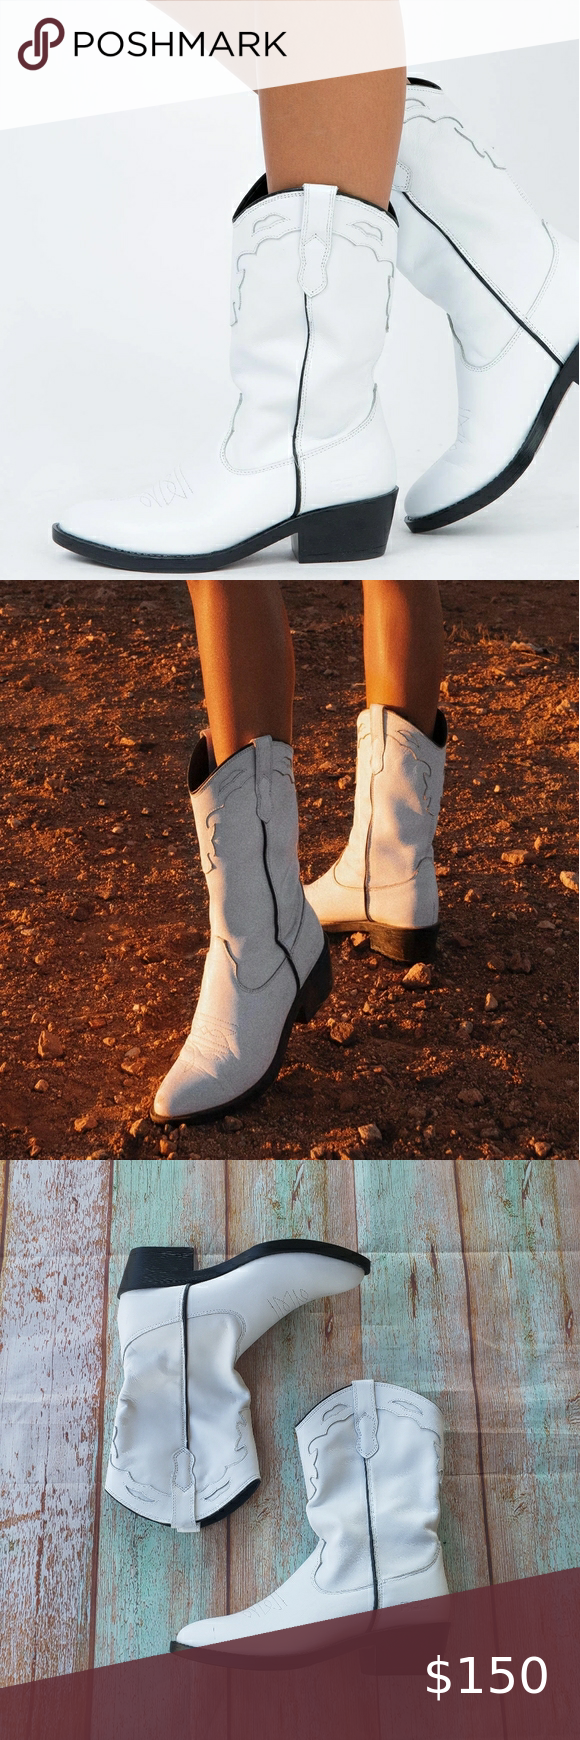 Princess Polly White Indigo Leather Cowboh Boots 7 in 2020